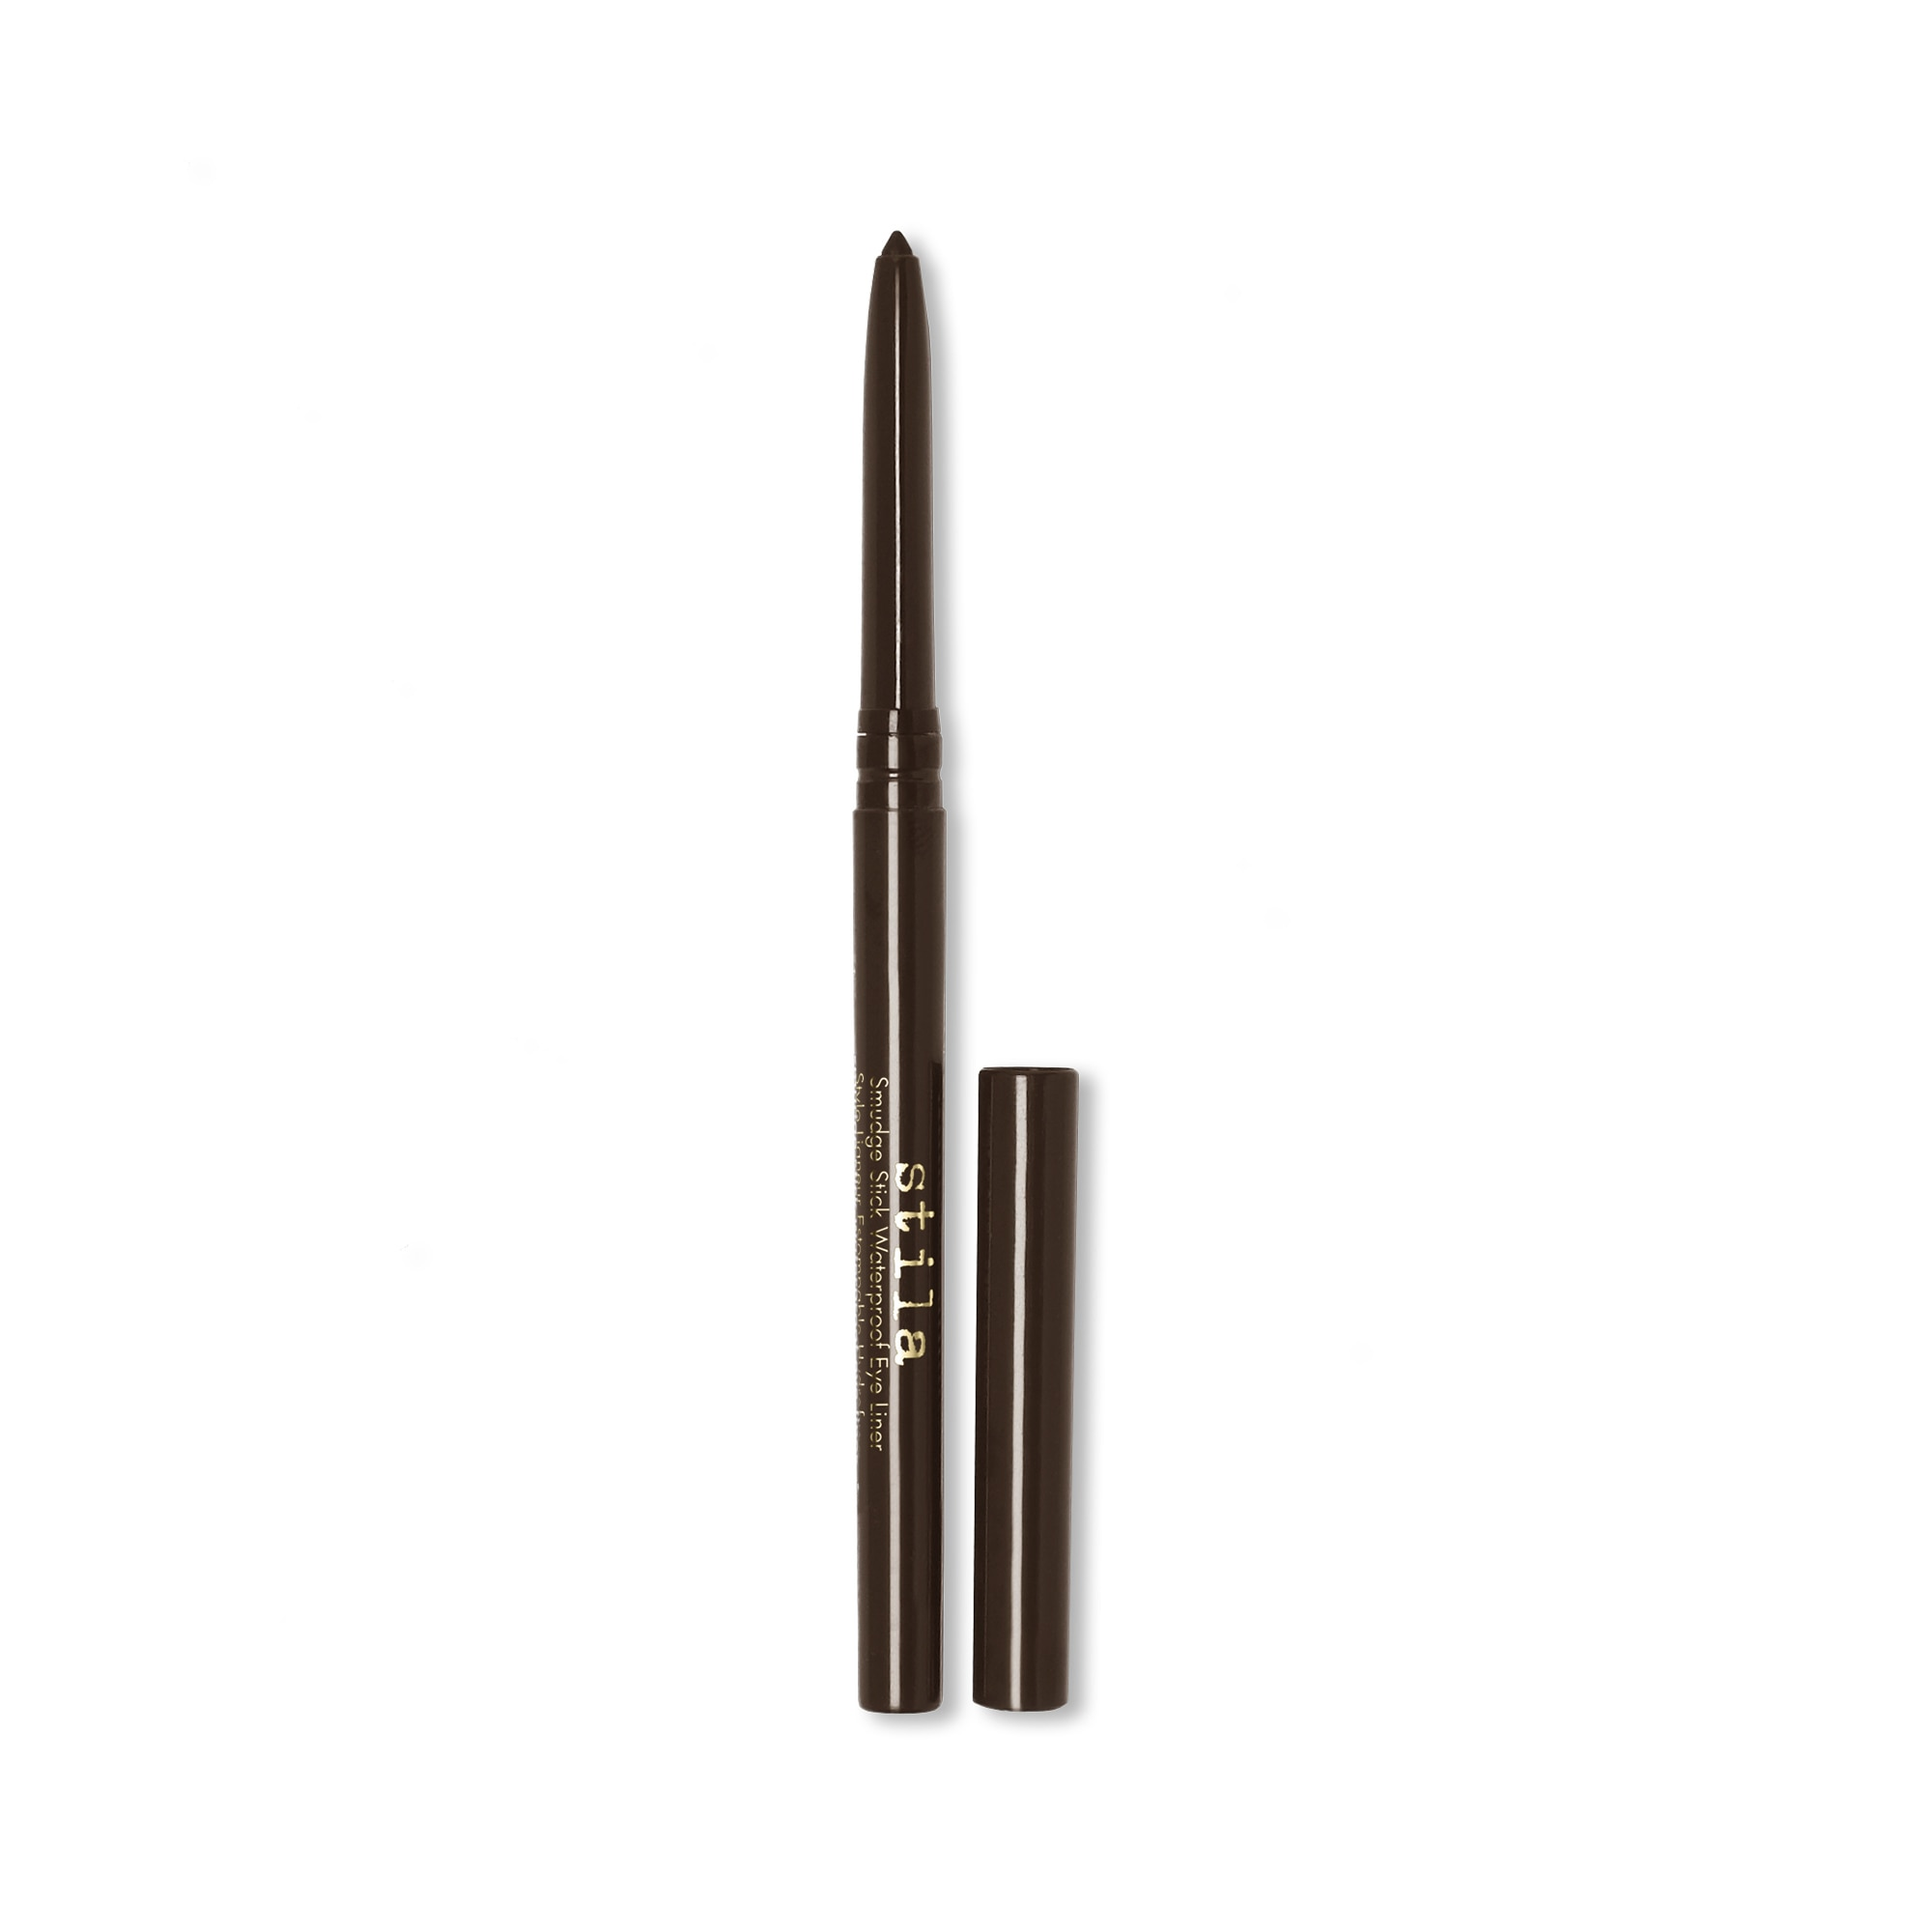 SMUDGE STICK WATERPROOF EYELINER